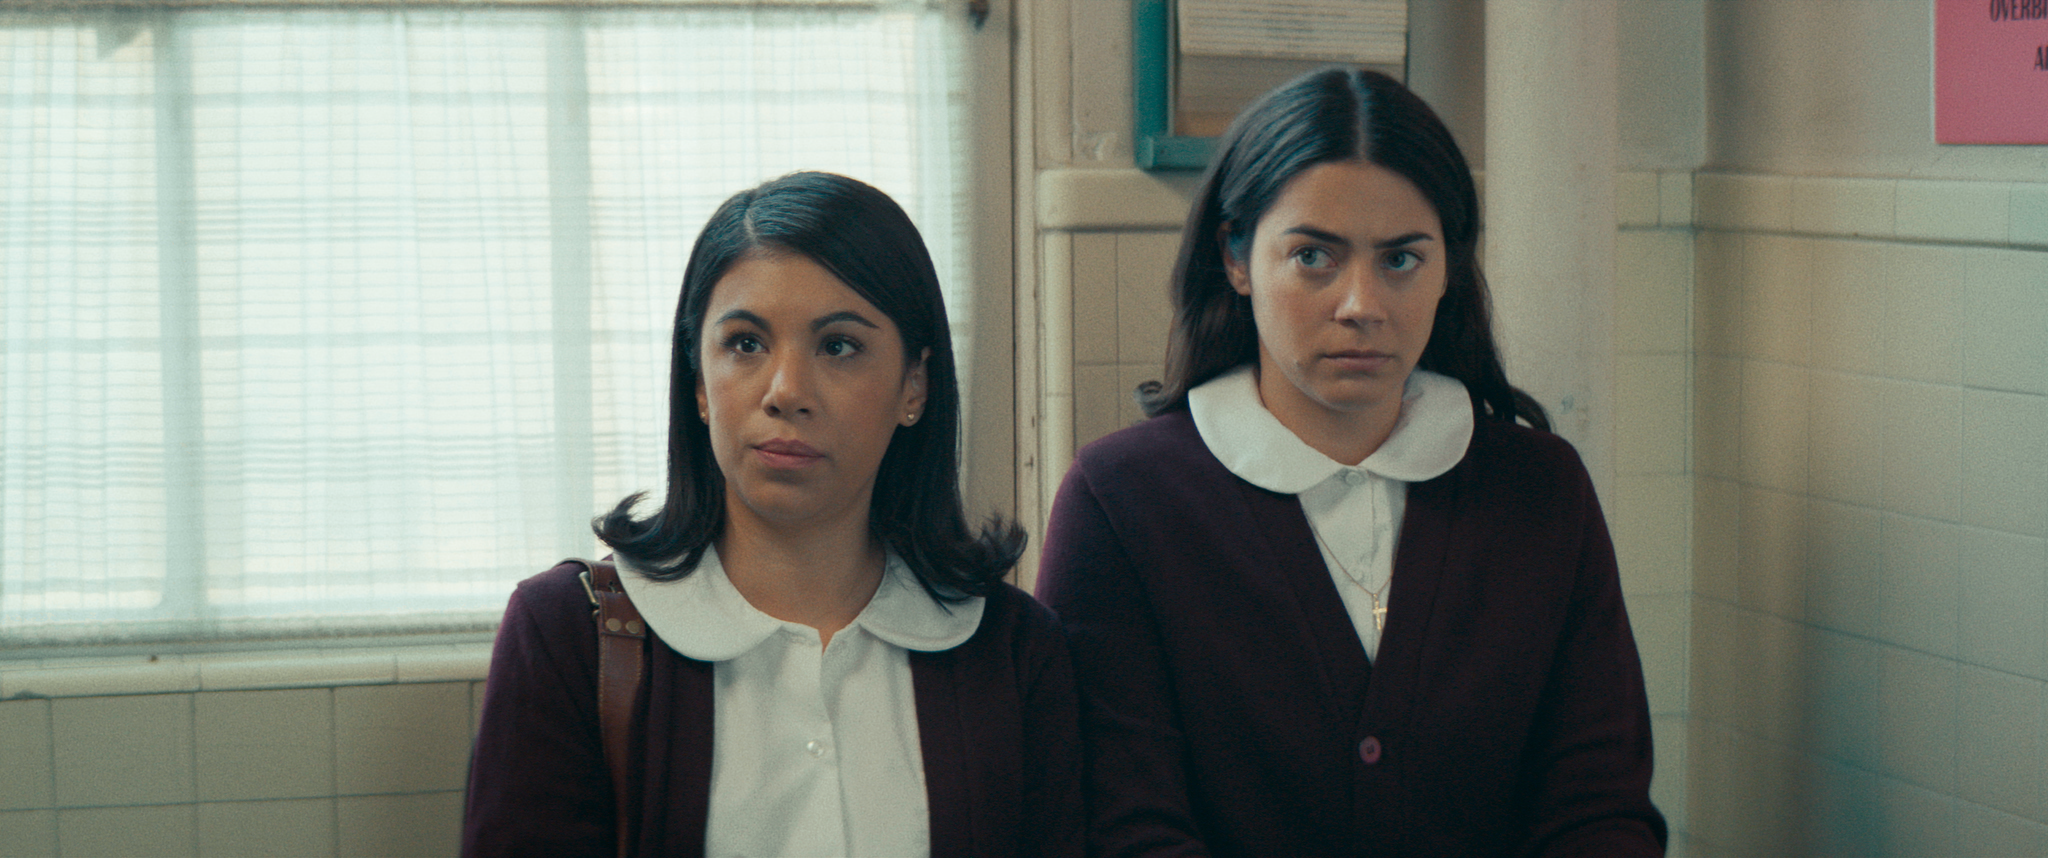 """Trailer Watch: Sexism & Disappointing Men Stand in the Way of Lorenza Izzo's Dreams in """"Women Is Losers"""""""